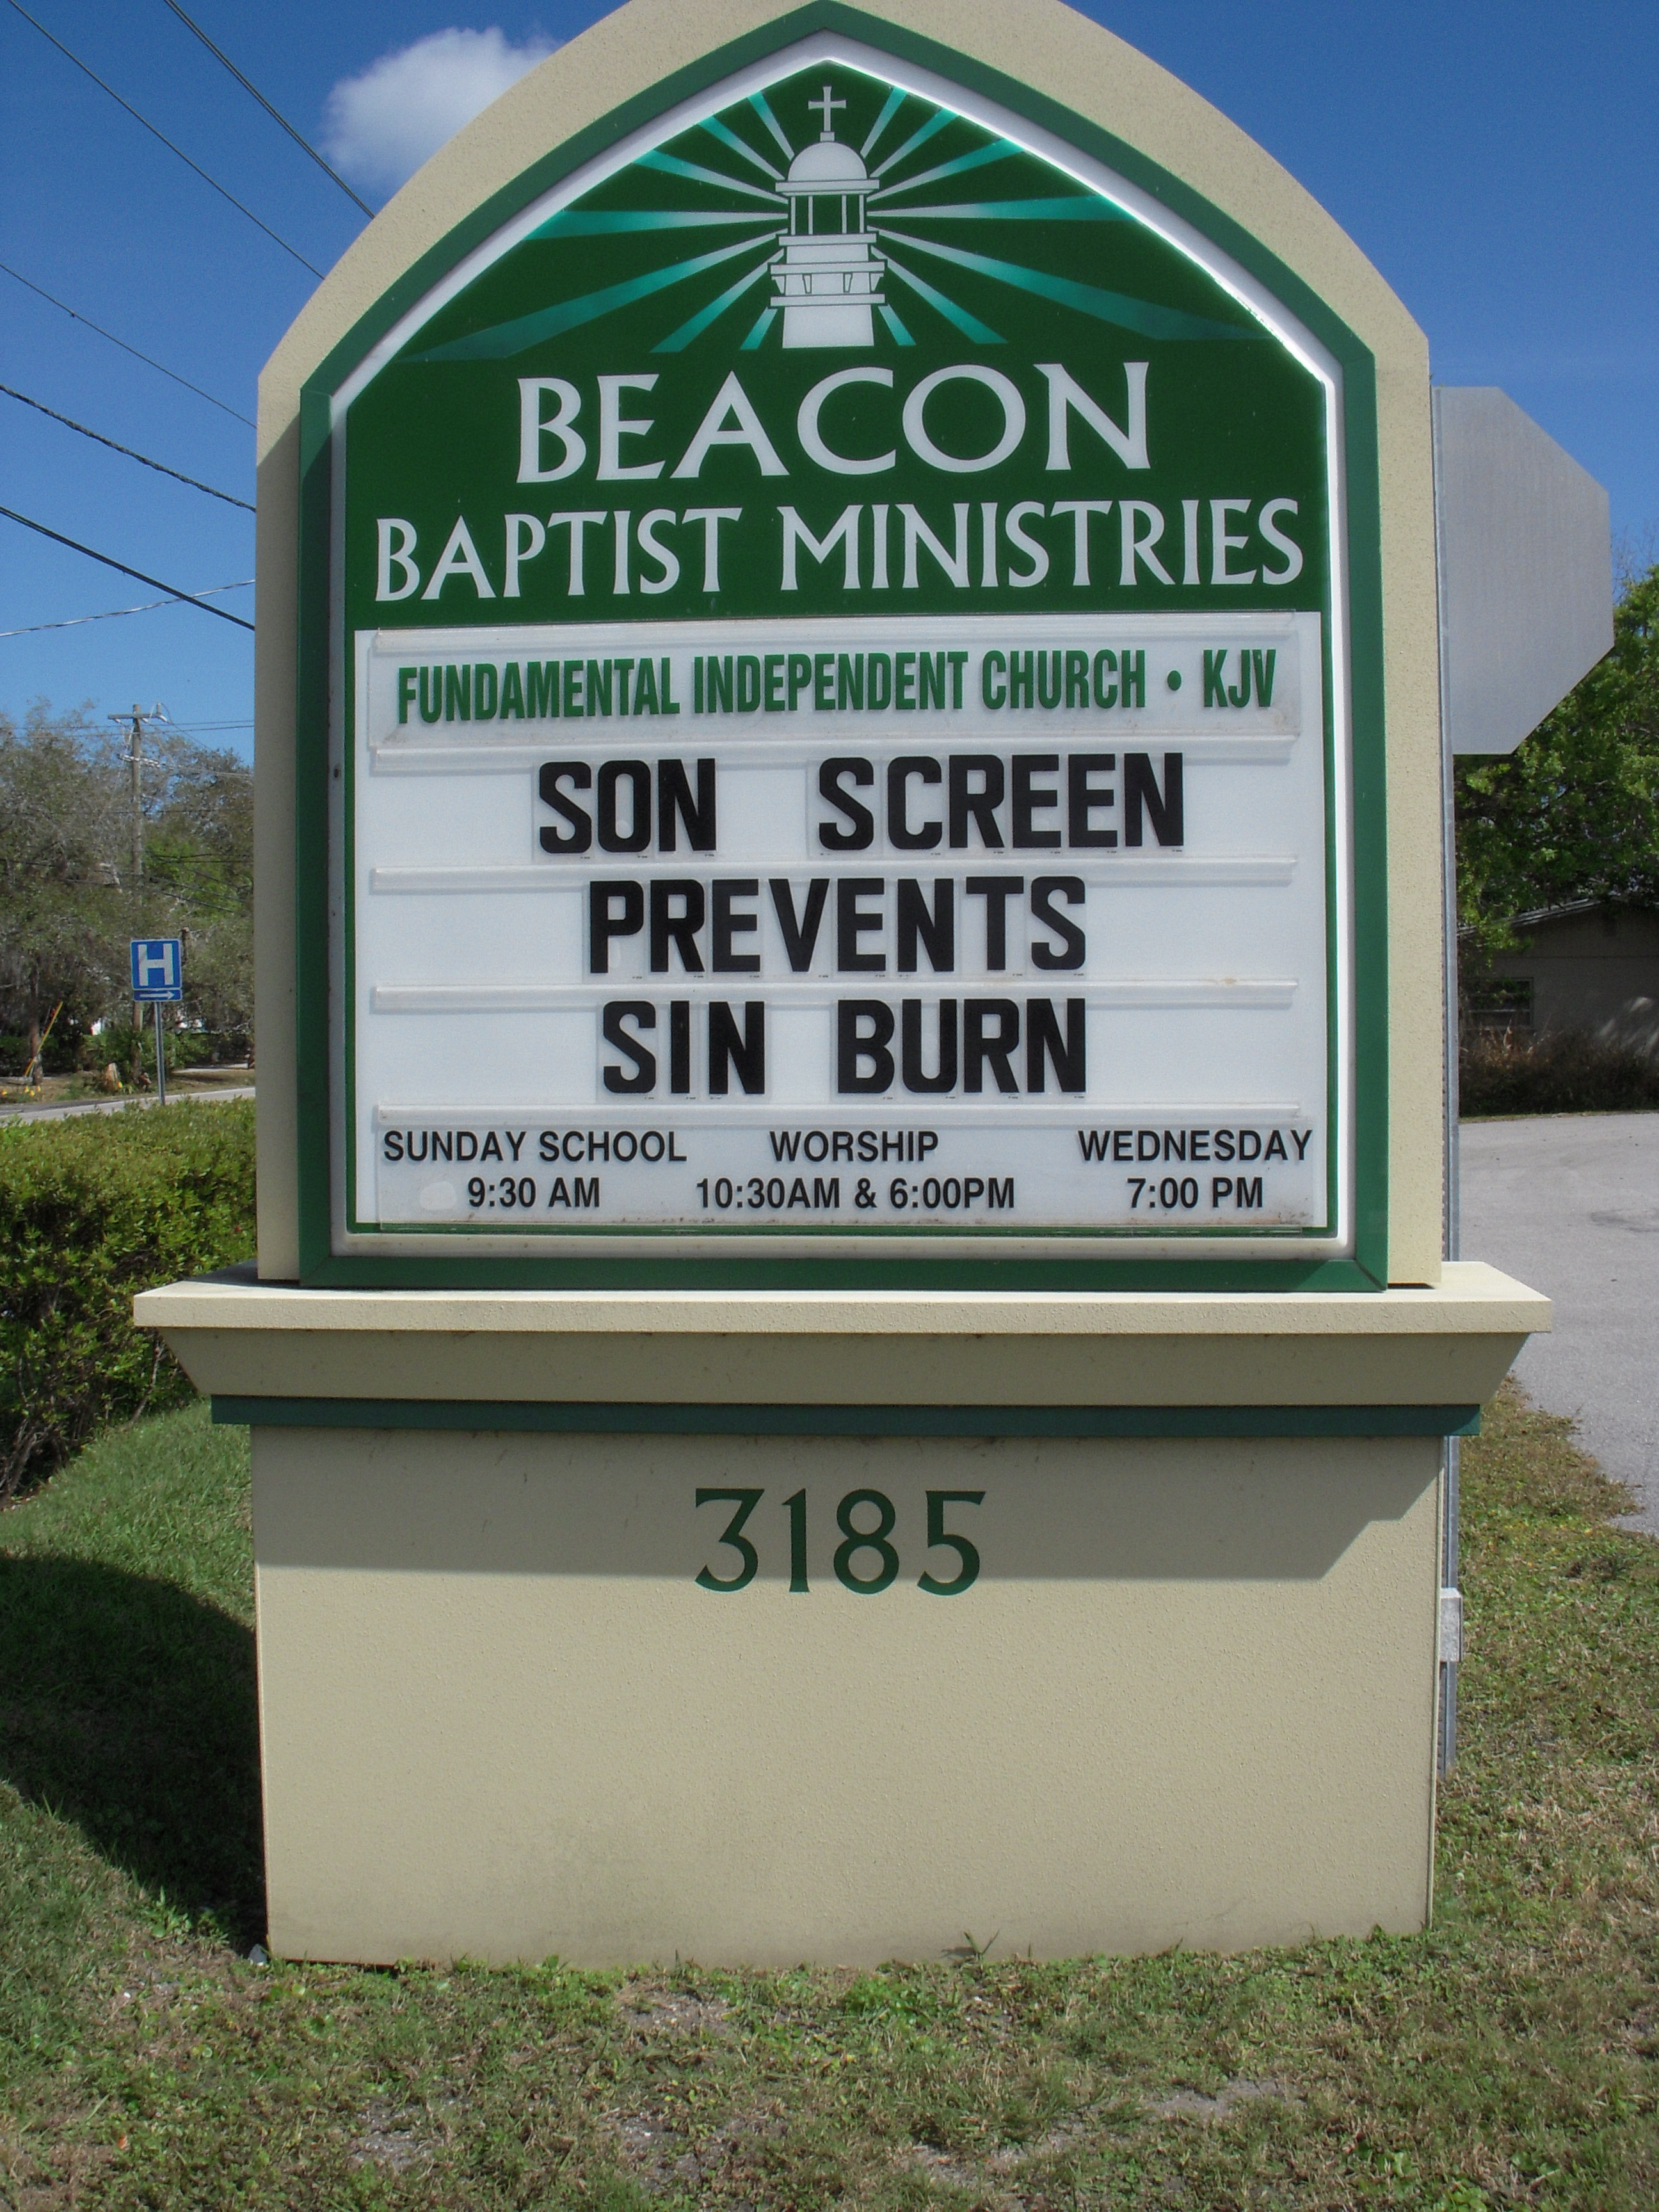 Church sign: Son screen prevents sin burn.